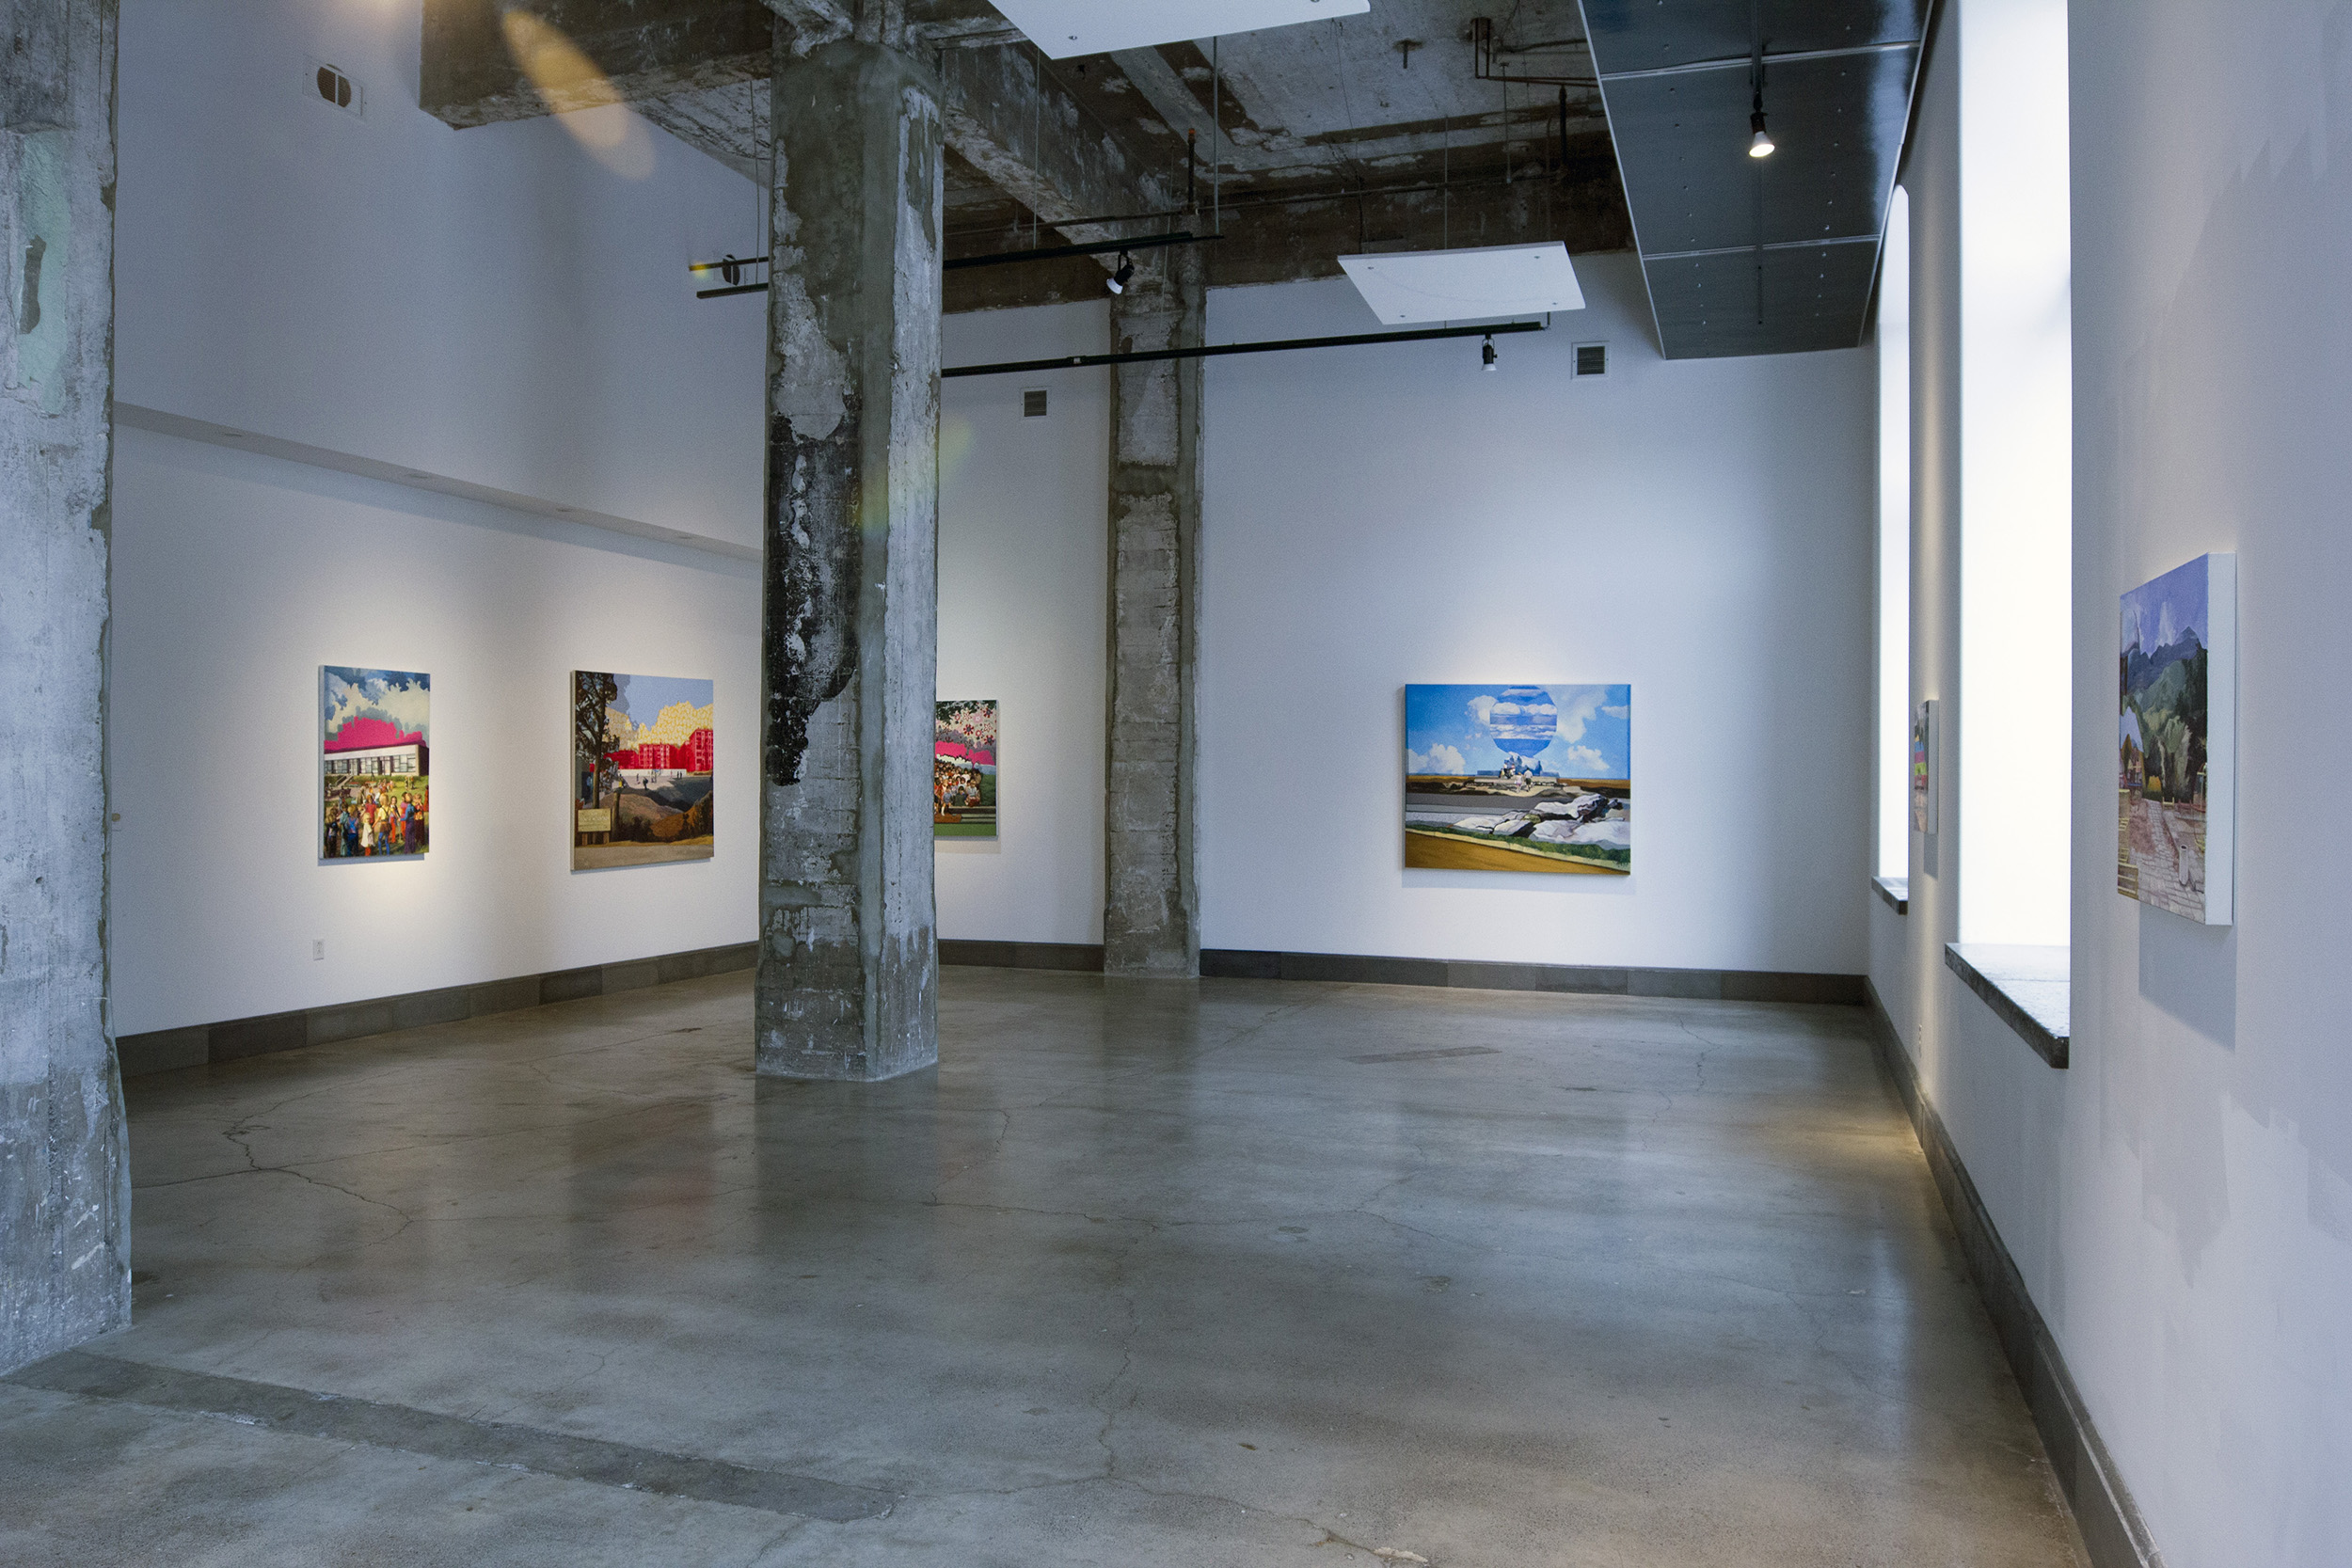 Installation View, River House Arts